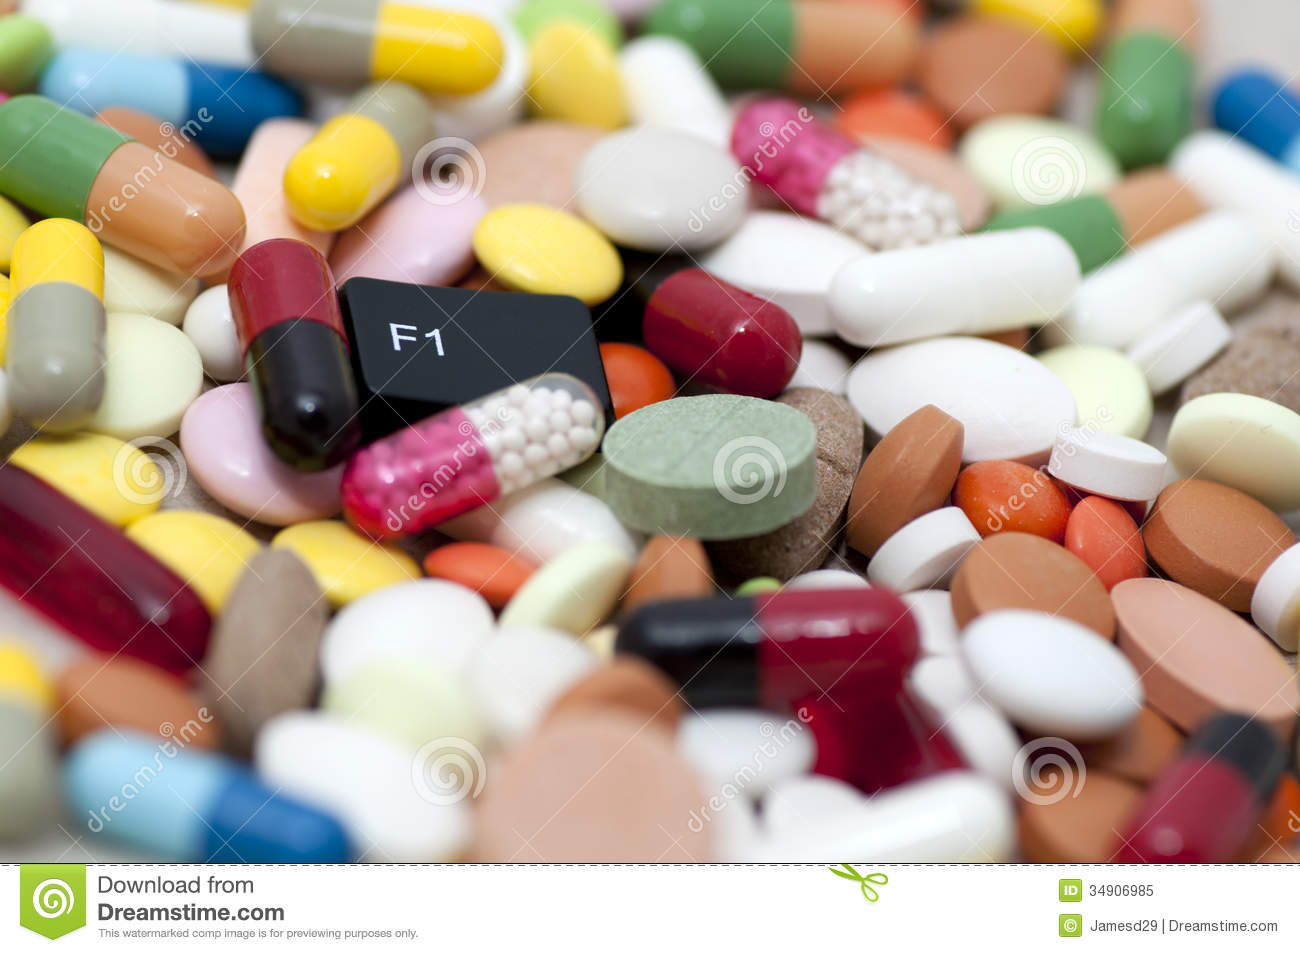 F1 (help) key among drugs (help with drugs)